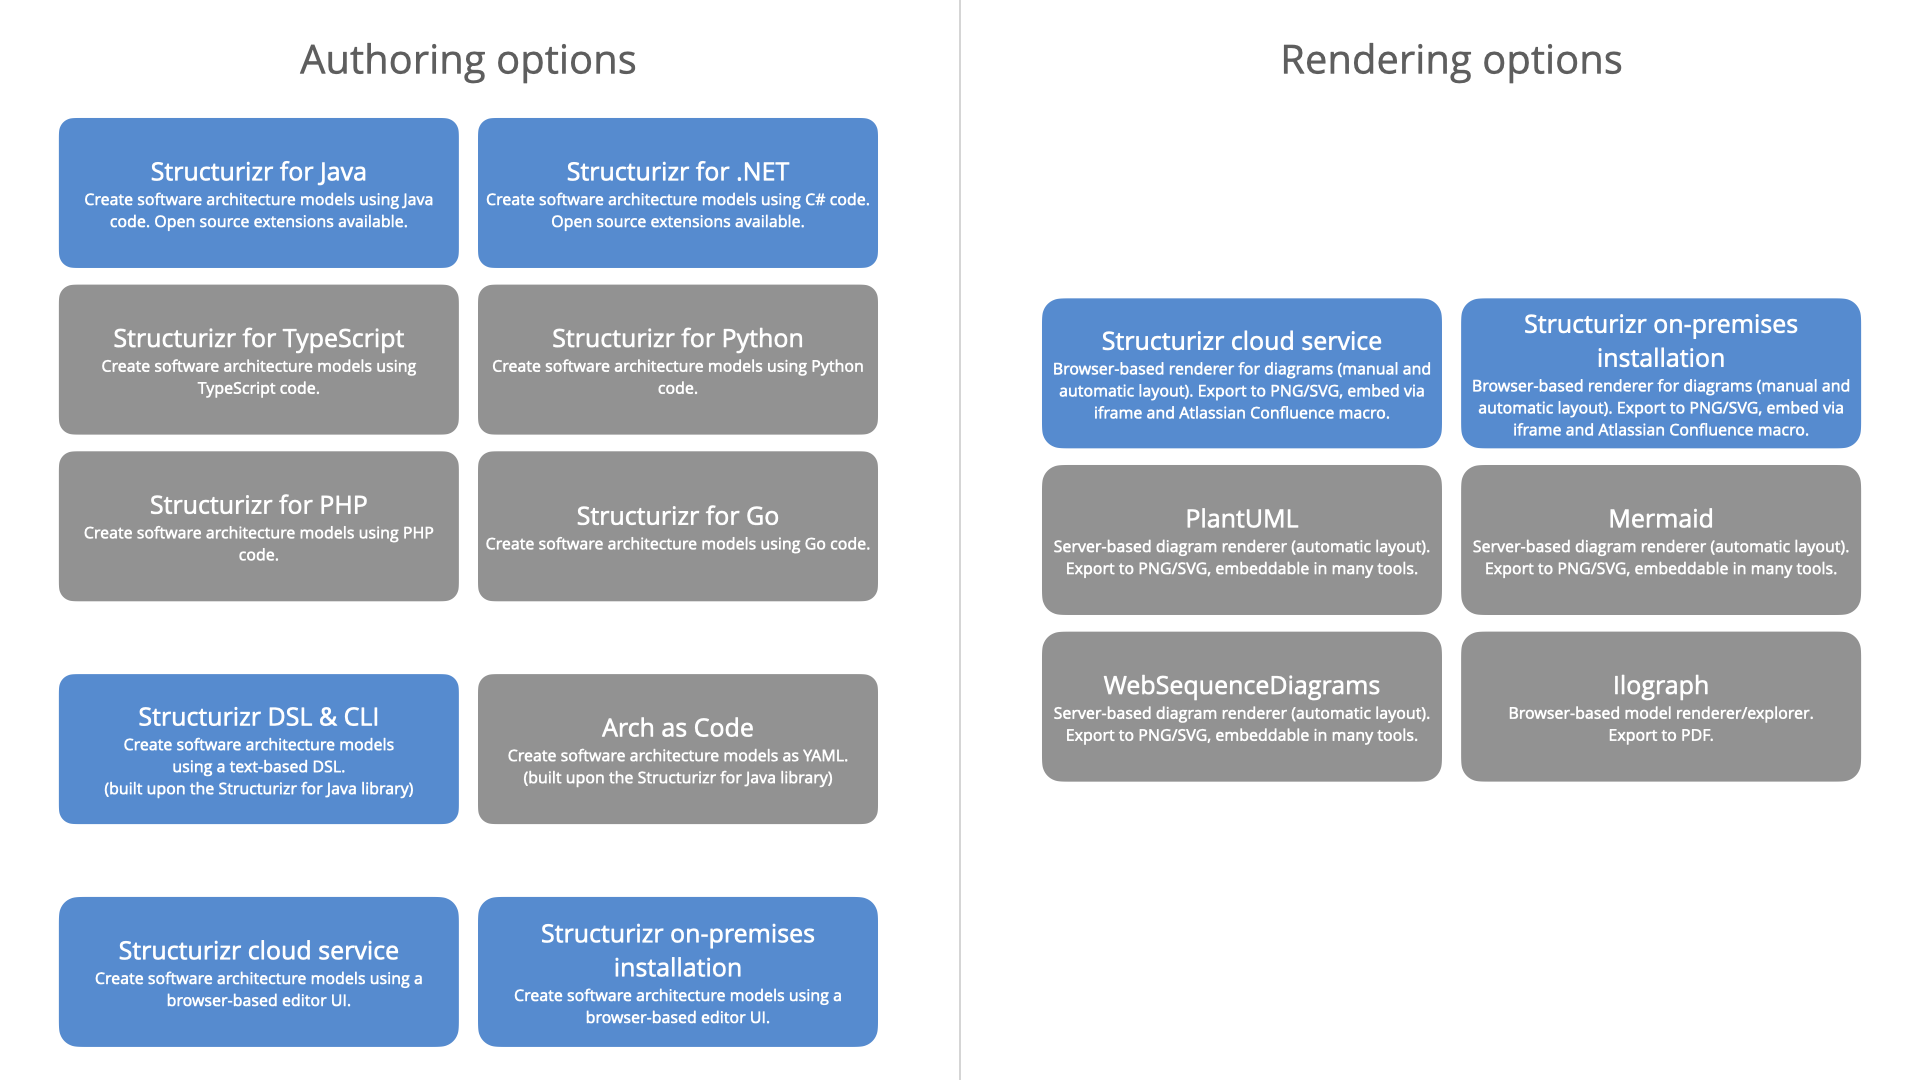 Authoring and rendering options